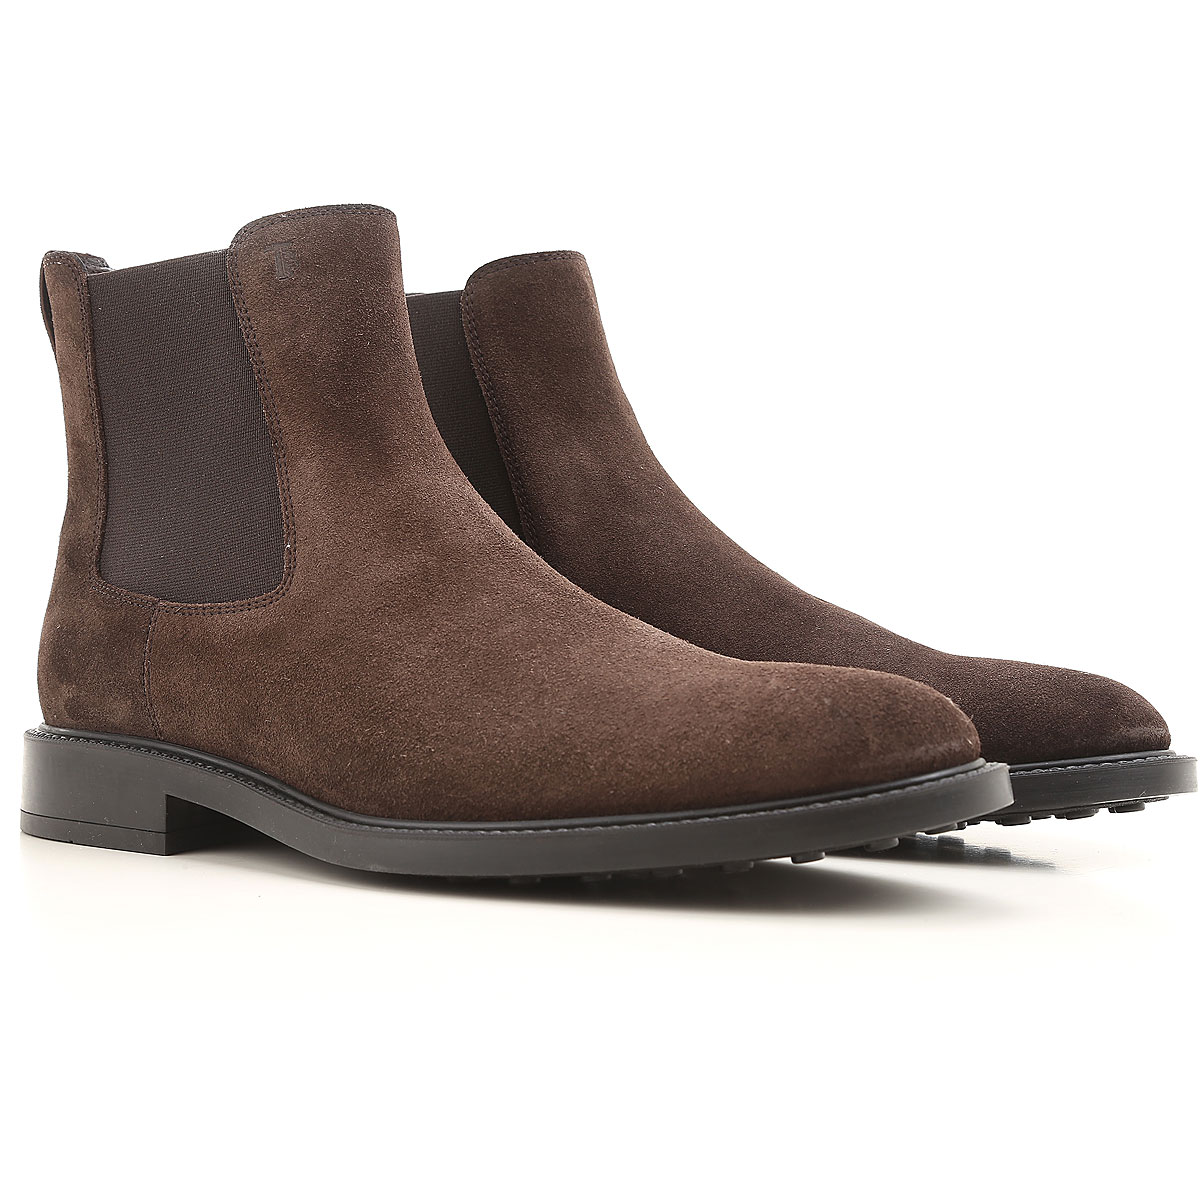 Tods Boots for Men, Booties On Sale, Brown, Suede leather, 2019, 10 10.5 11 11.5 12 6 6 6 6.5 7 7.5 8 8.5 9 9.5